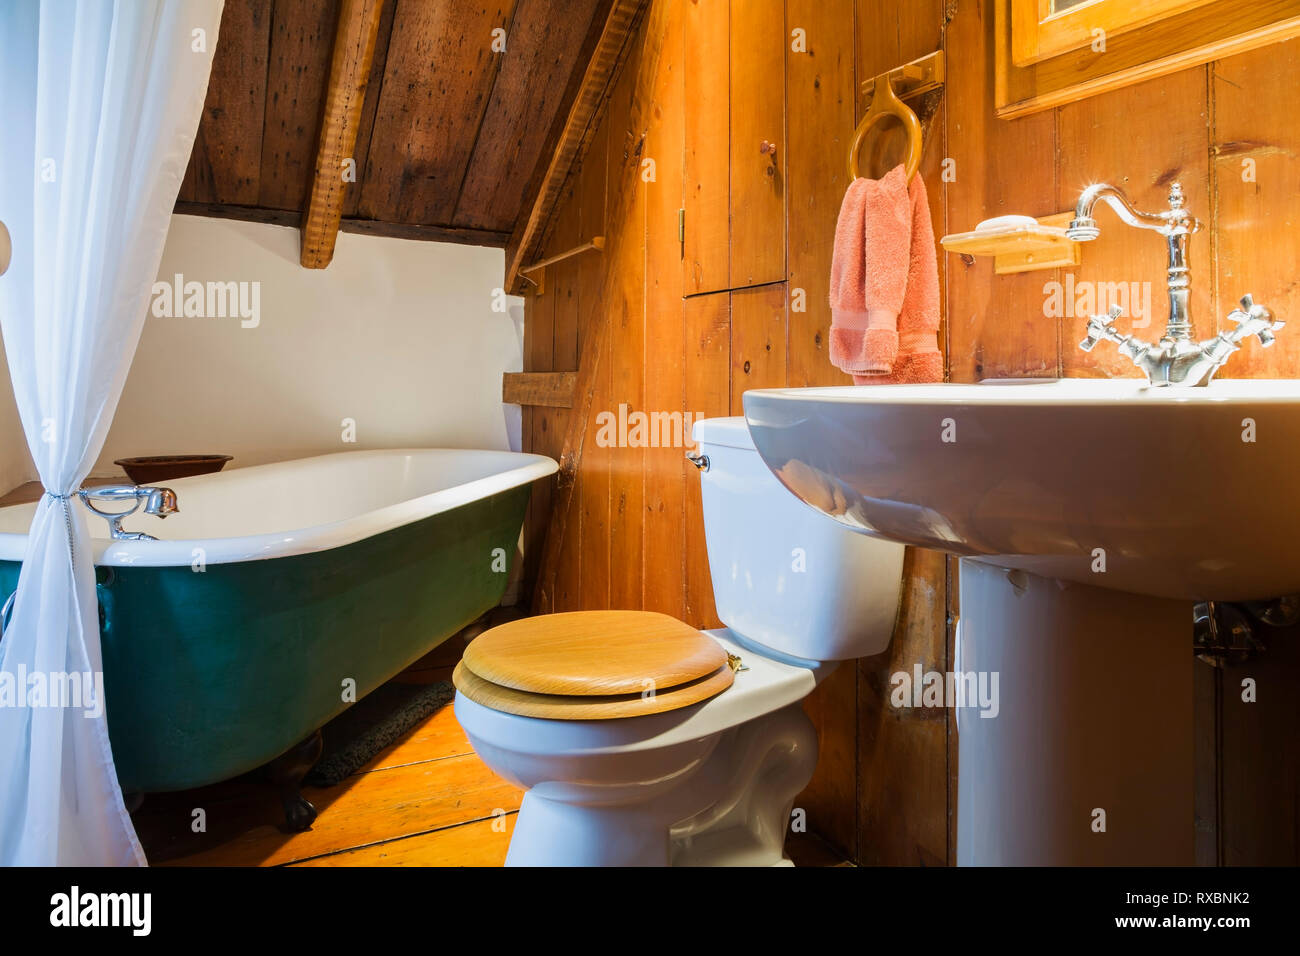 Bathroom with green 1880s claw-foot soaking tub on the upstairs floor inside an old circa 1750 Canadiana style fieldstone house, Quebec, Canada. This  - Stock Image